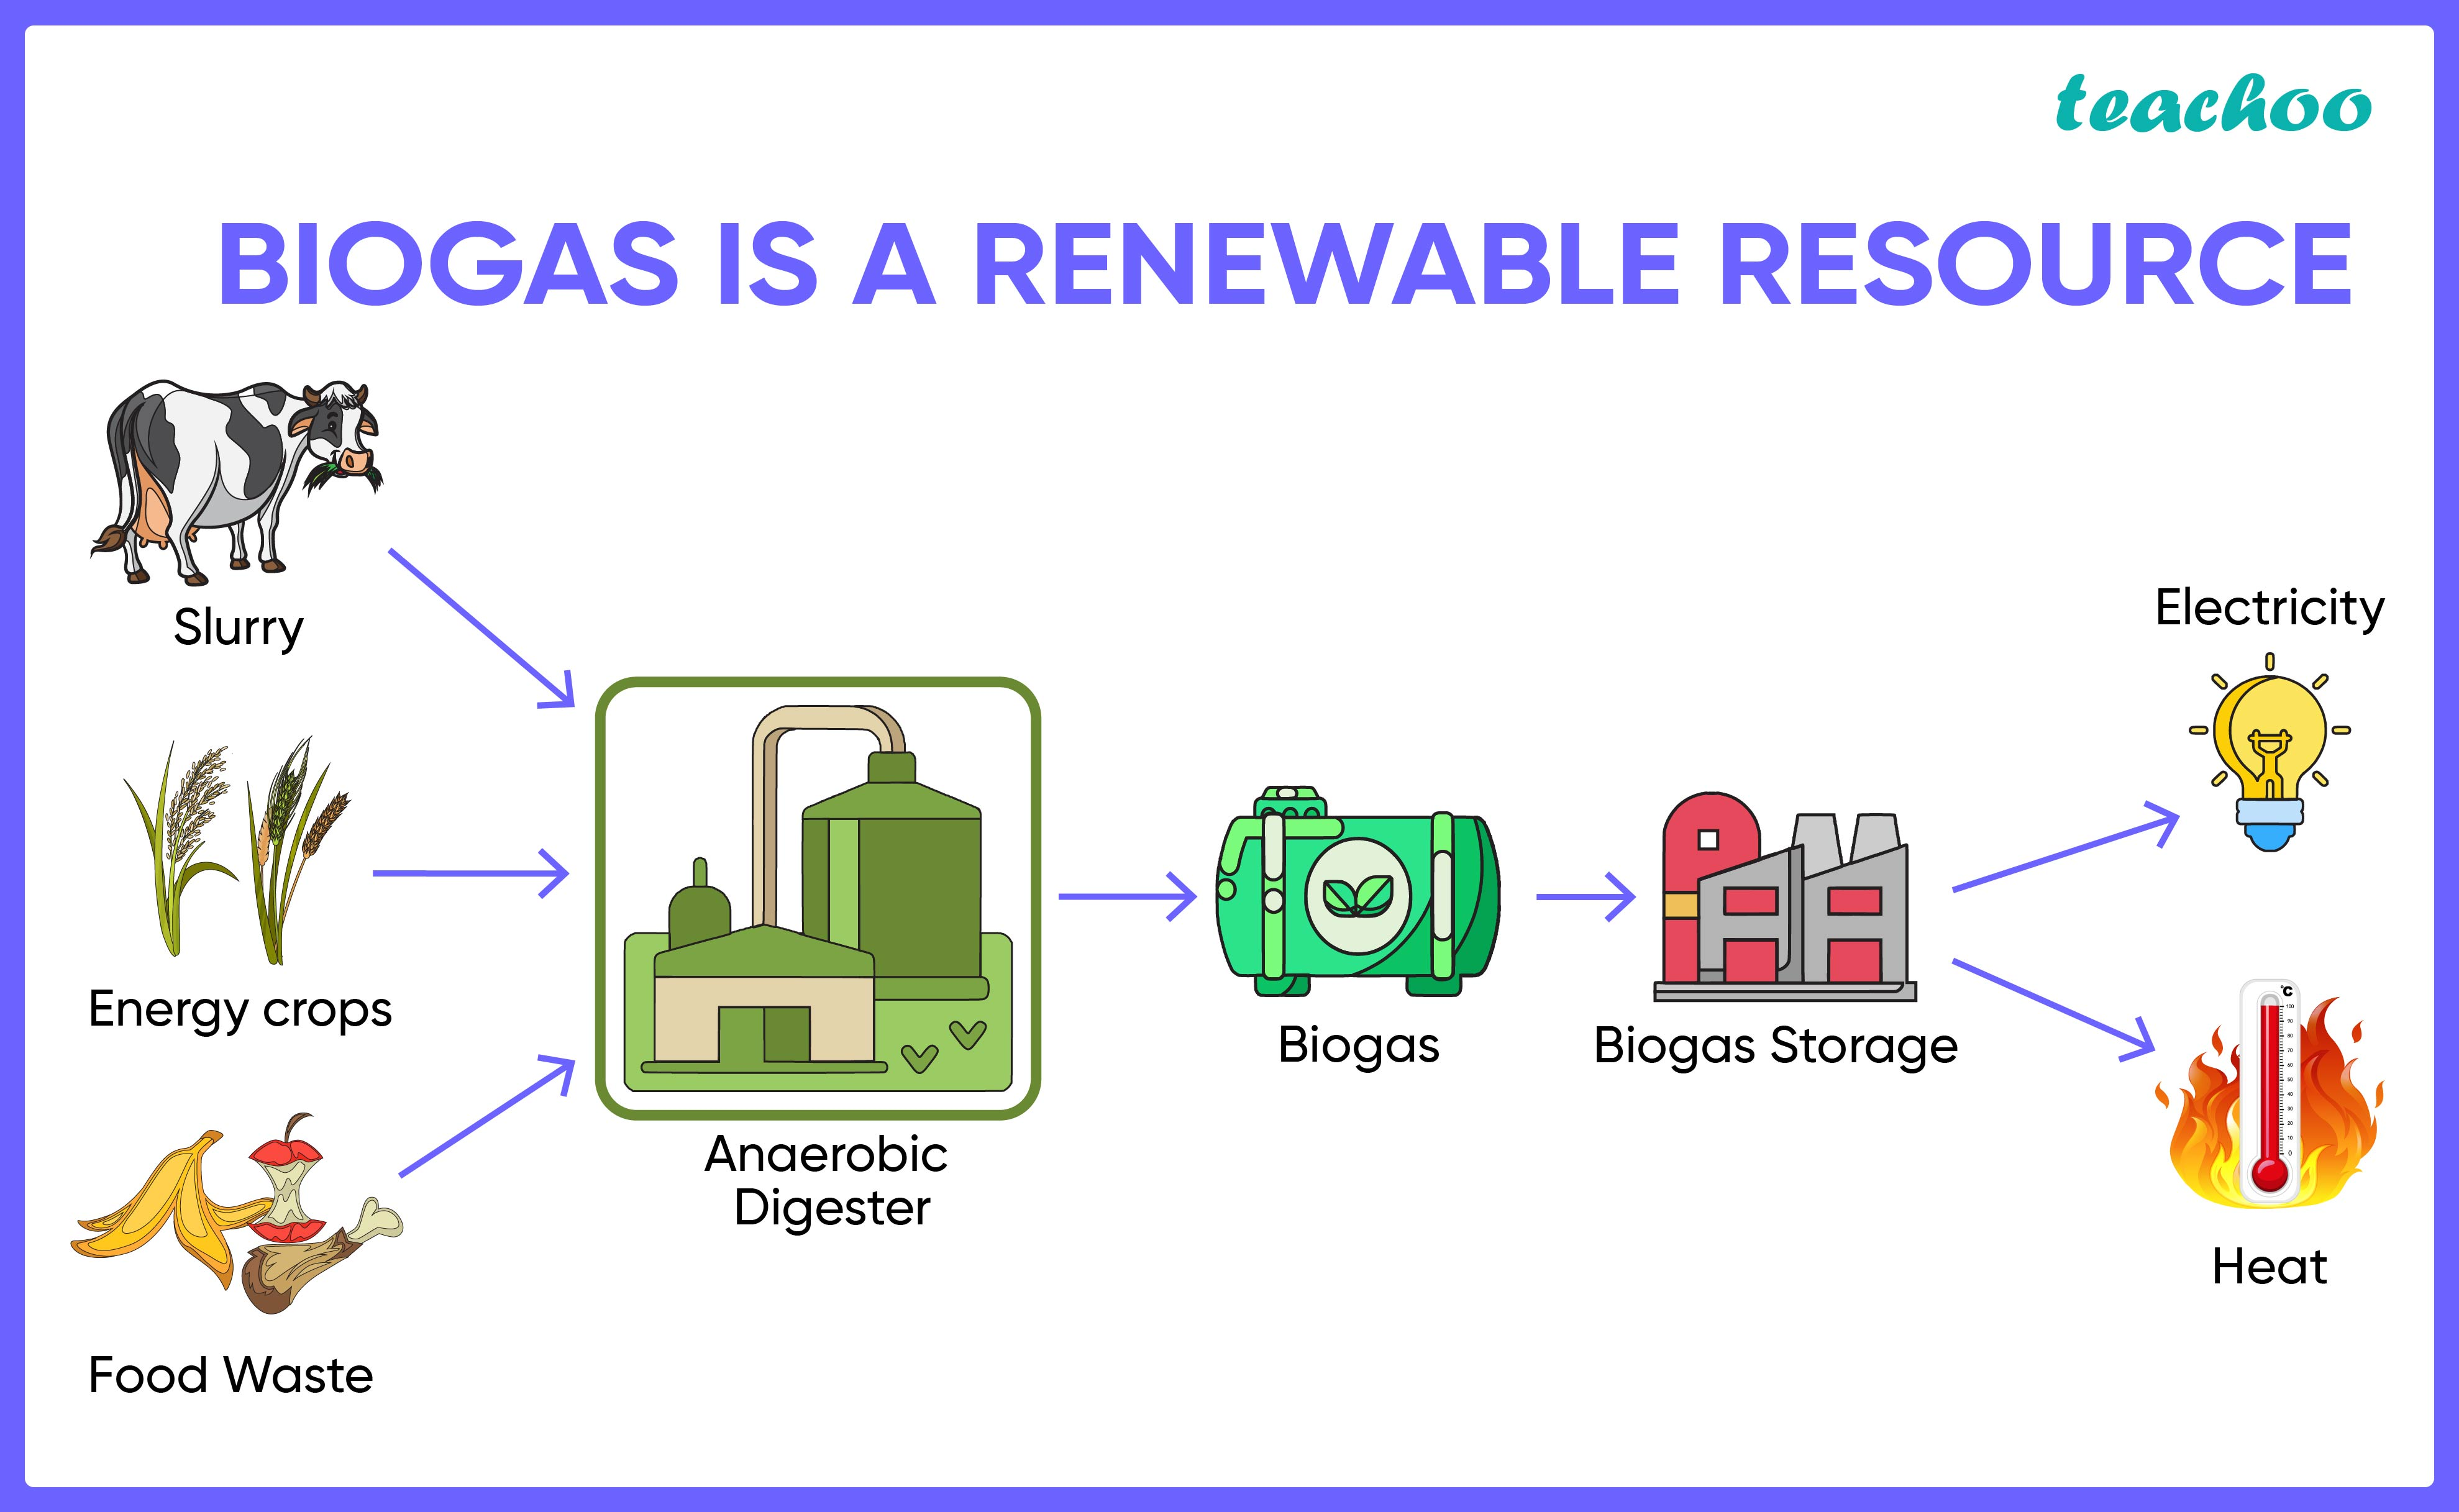 Outline of biogas power generation and heat supply system-Techoo-01.jpg